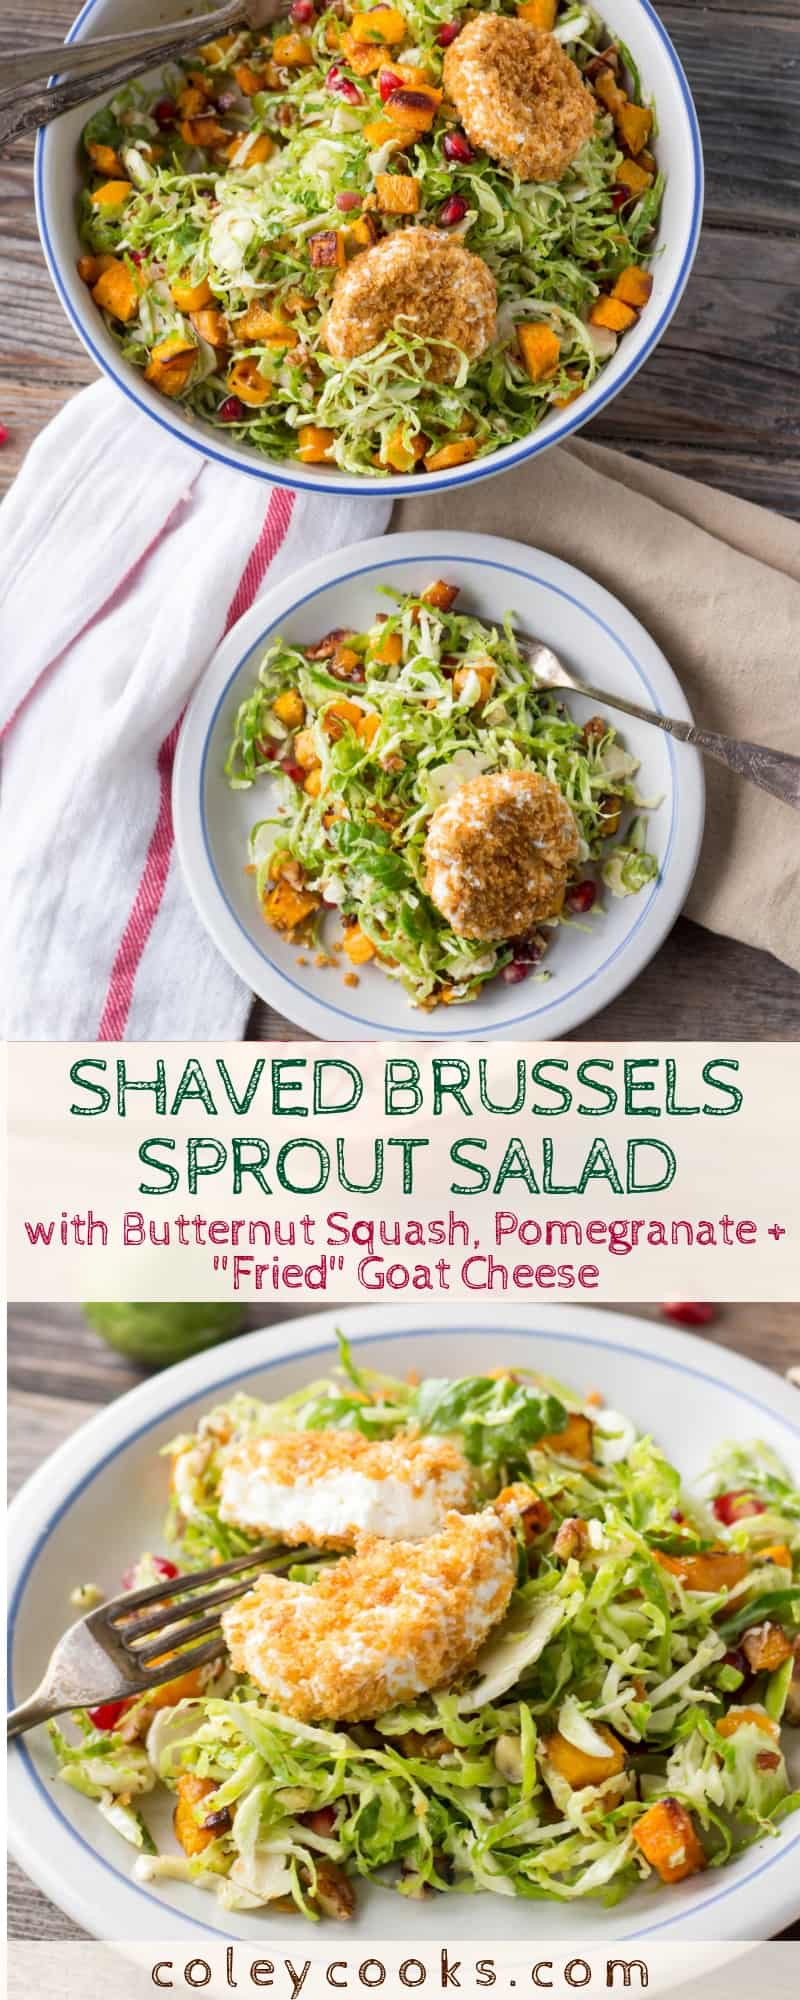 "Shaved Brussels Sprout Salad with Butternut Squash, Pomegranate + ""Fried"" Goat Cheese 